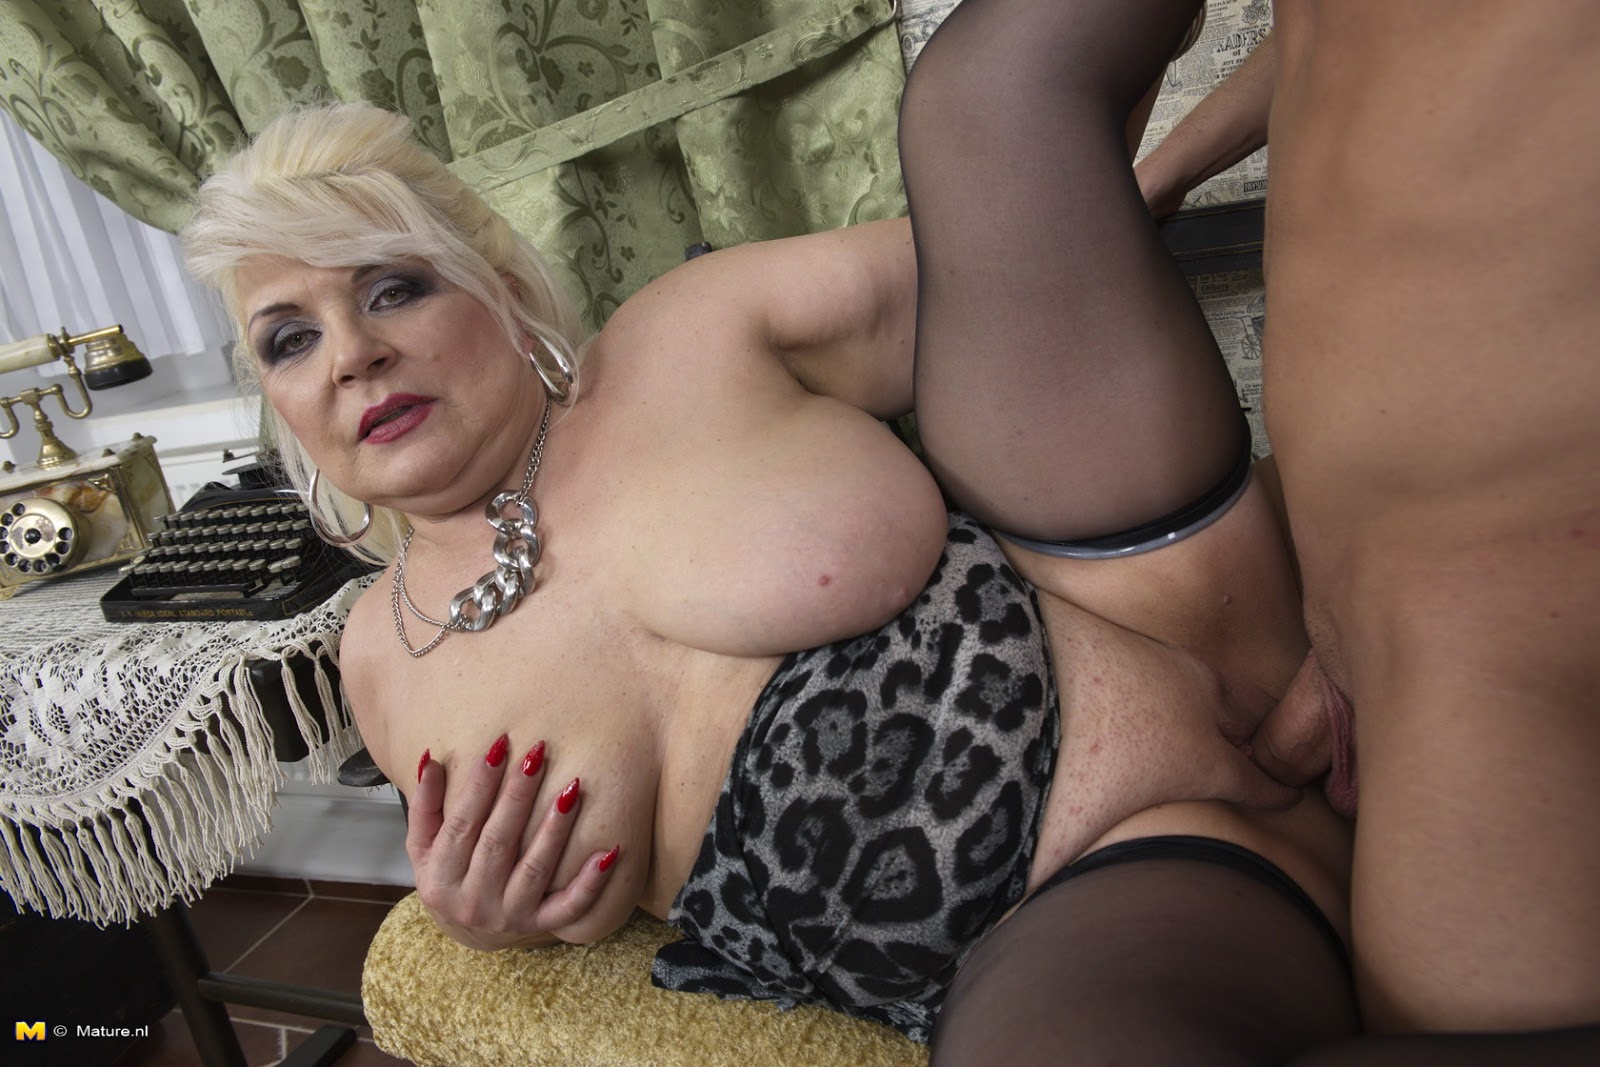 52 year old gilf is back and loves to fuck her dildo - 2 2